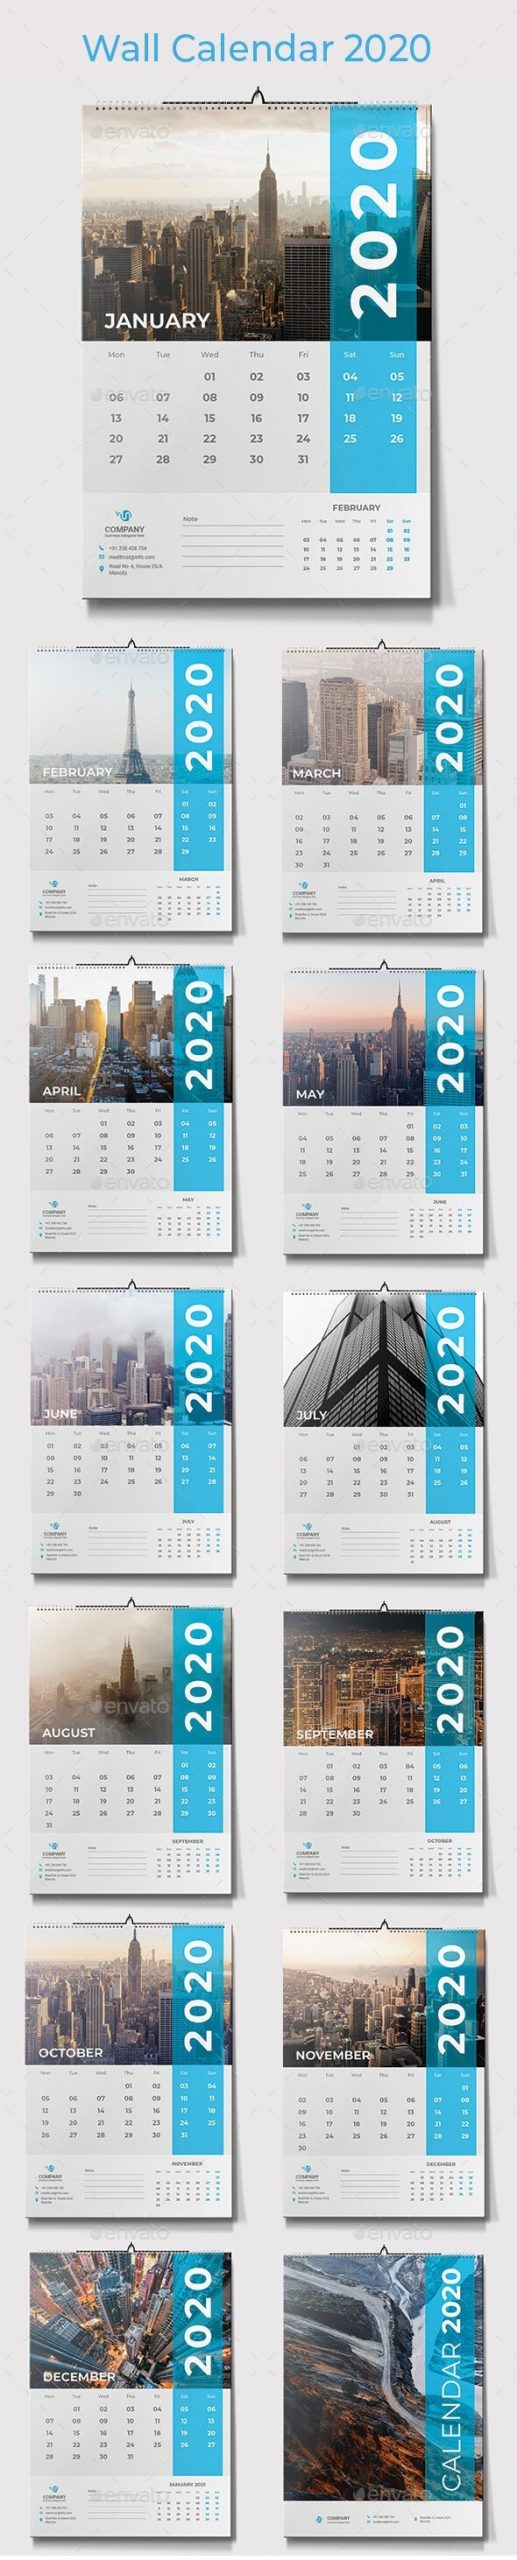 Calendar 2020 Graphics, Designs & Templates From Graphicriver